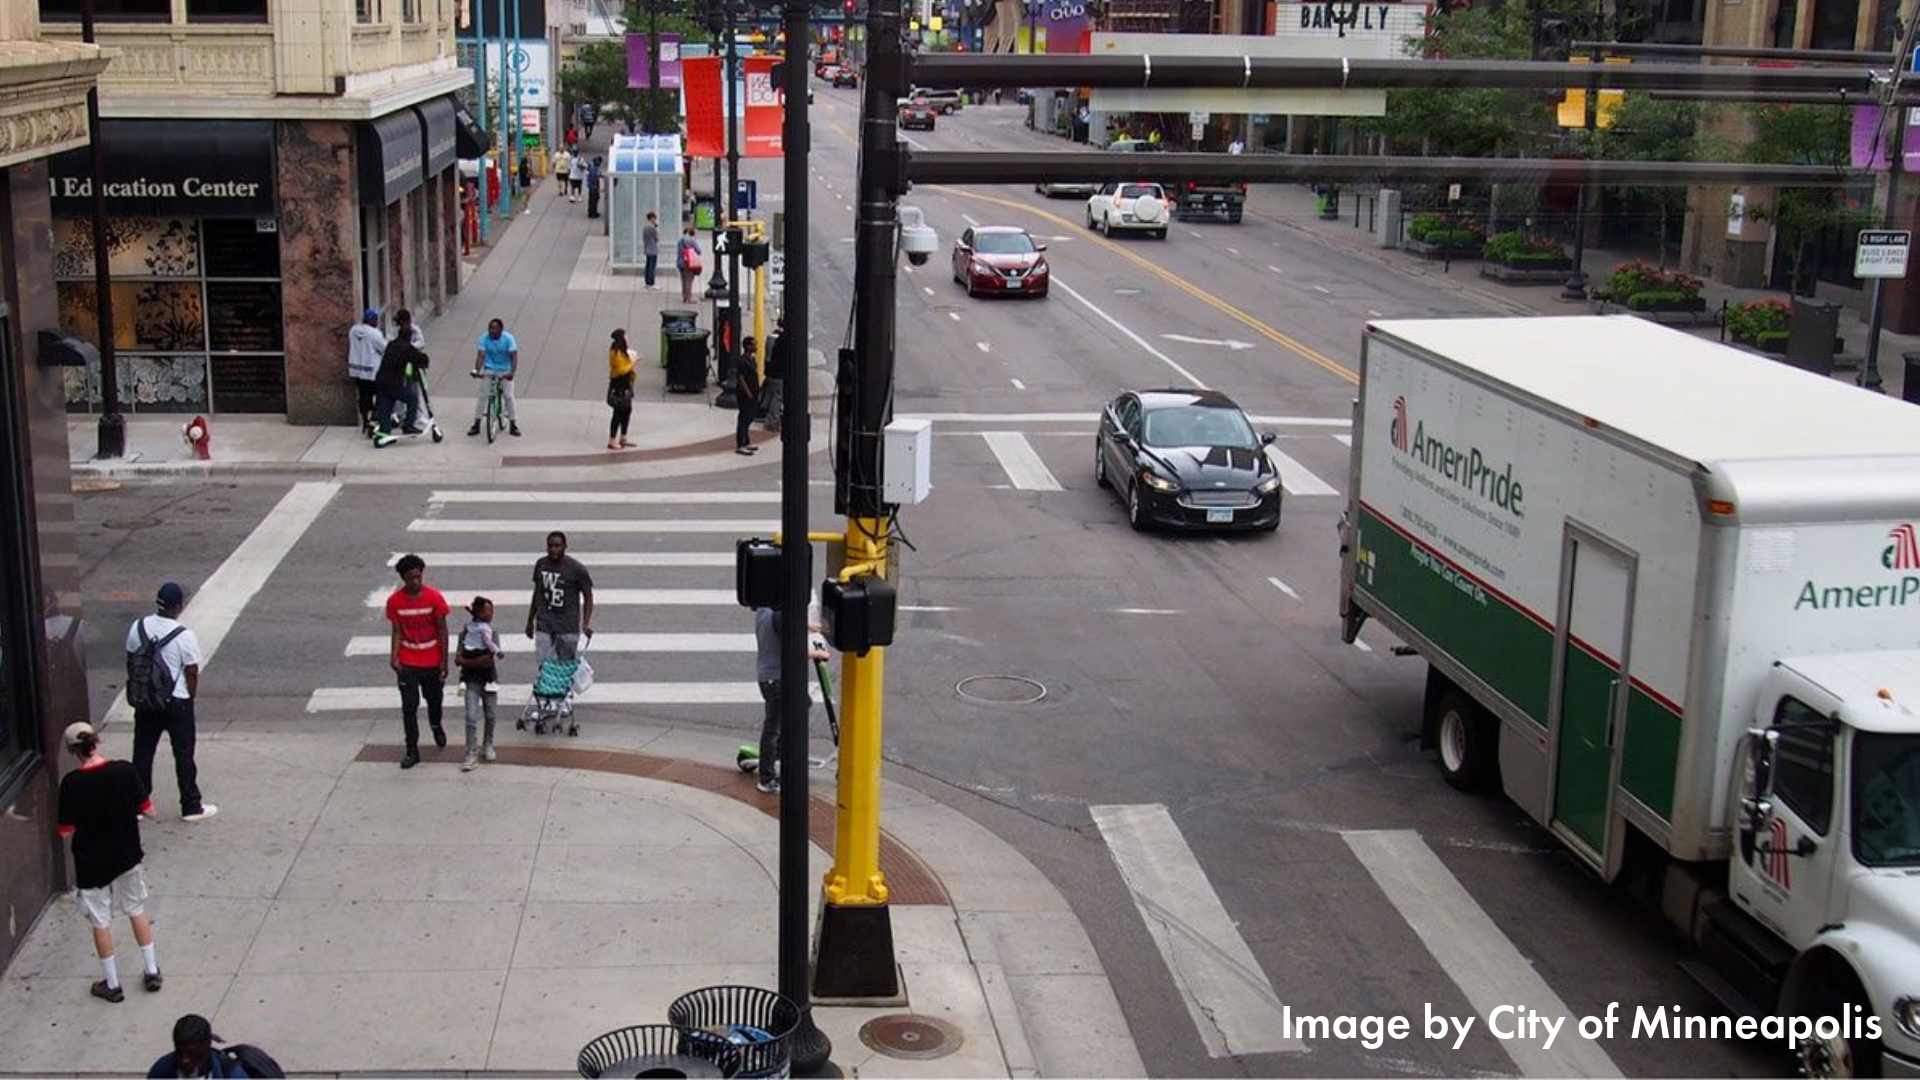 Downtown Minneapolis intersection with folks using many transportation modes